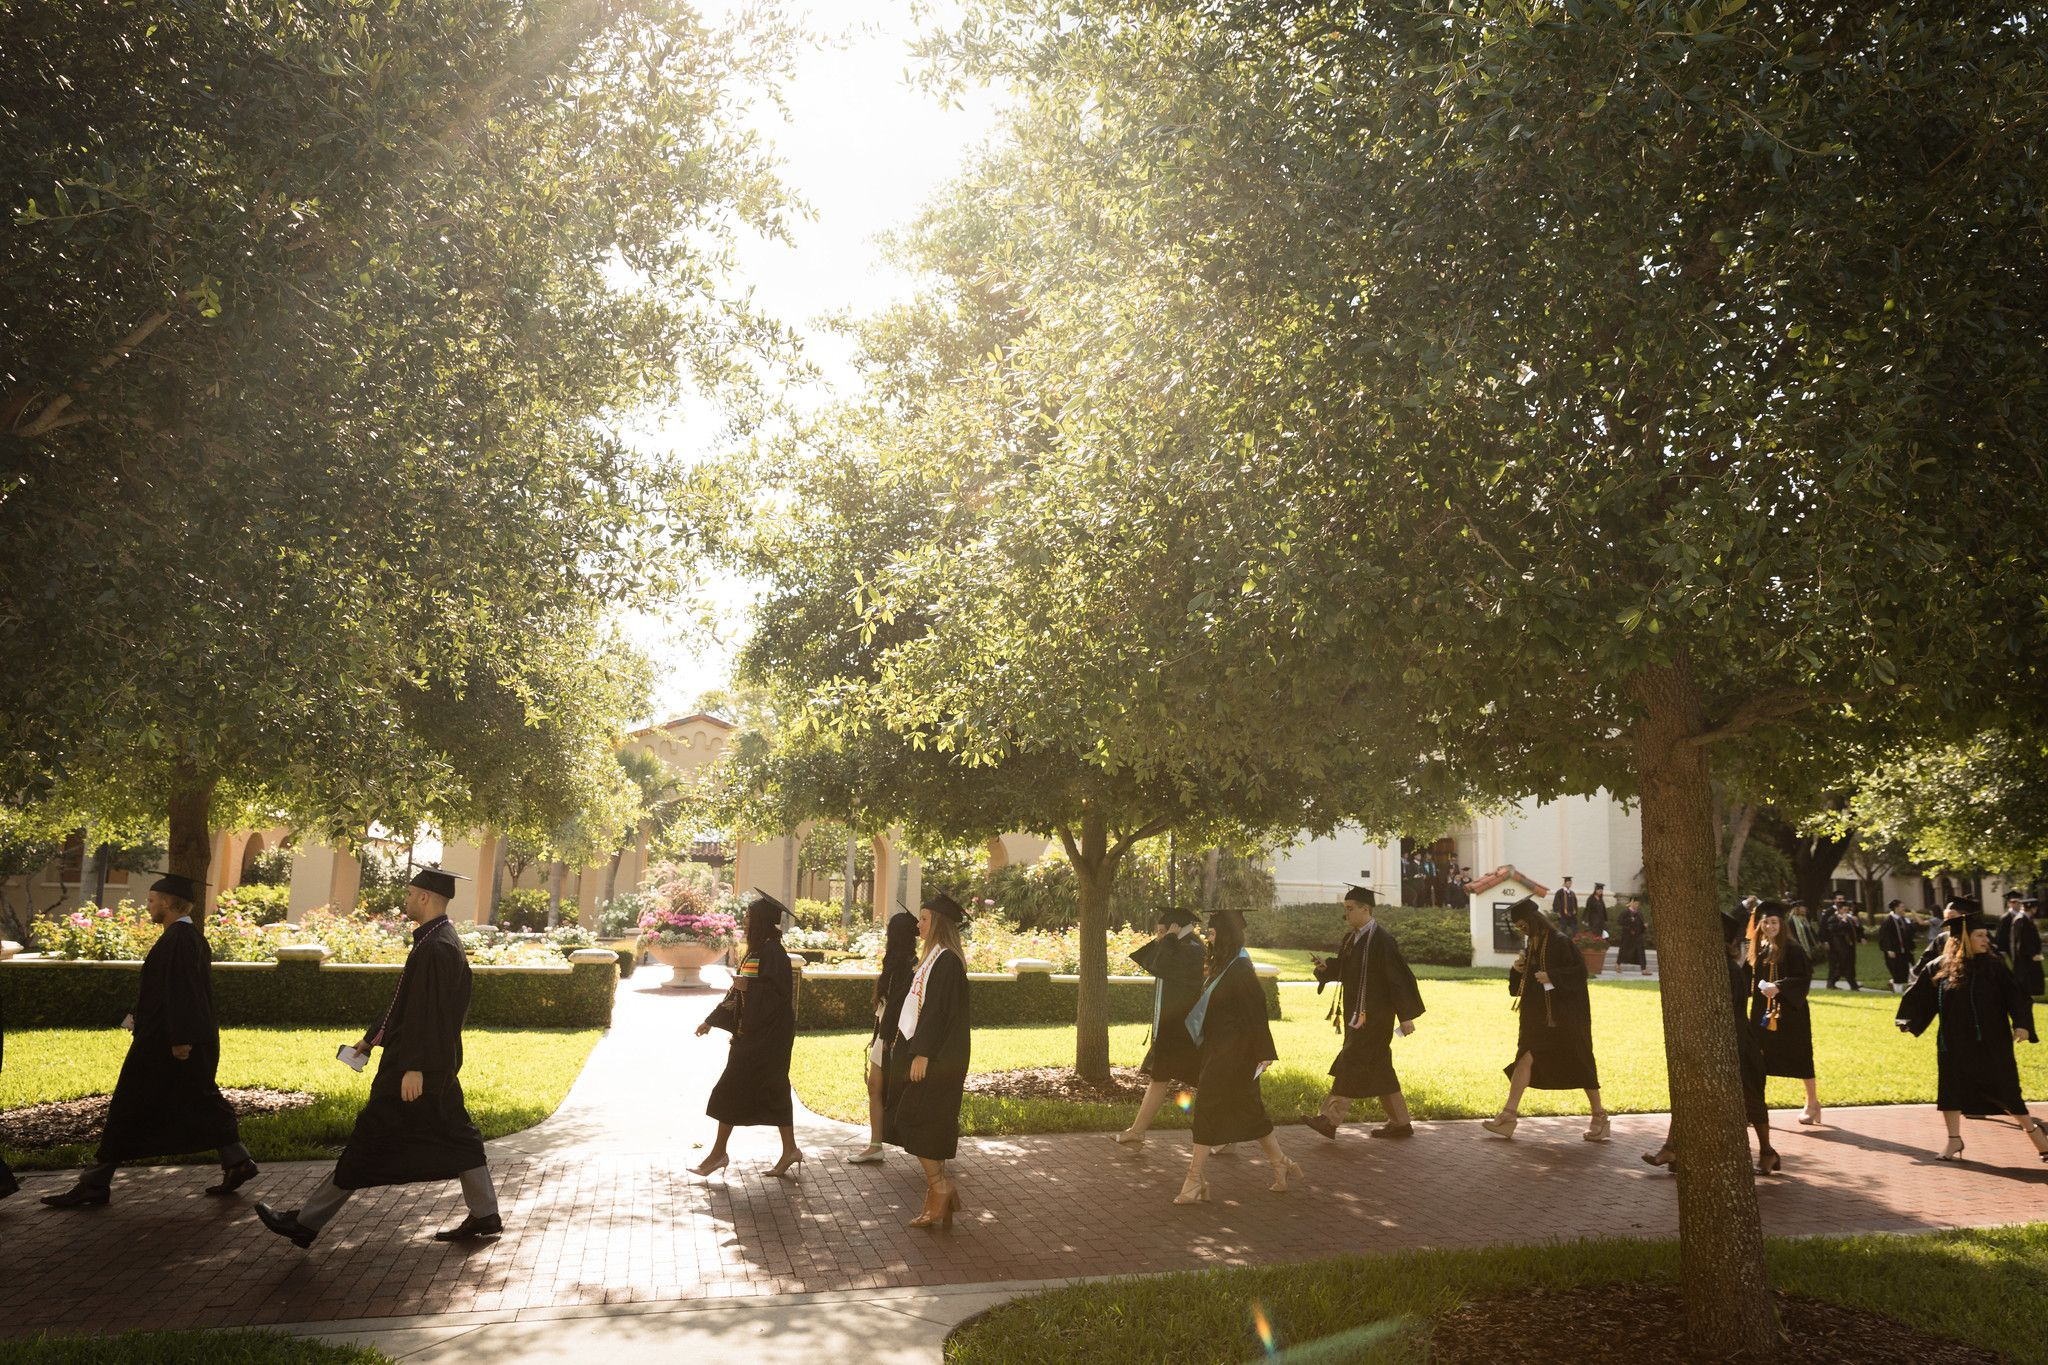 Students wearing caps and gowns walk to a commencement ceremony on Rollins College's campus.